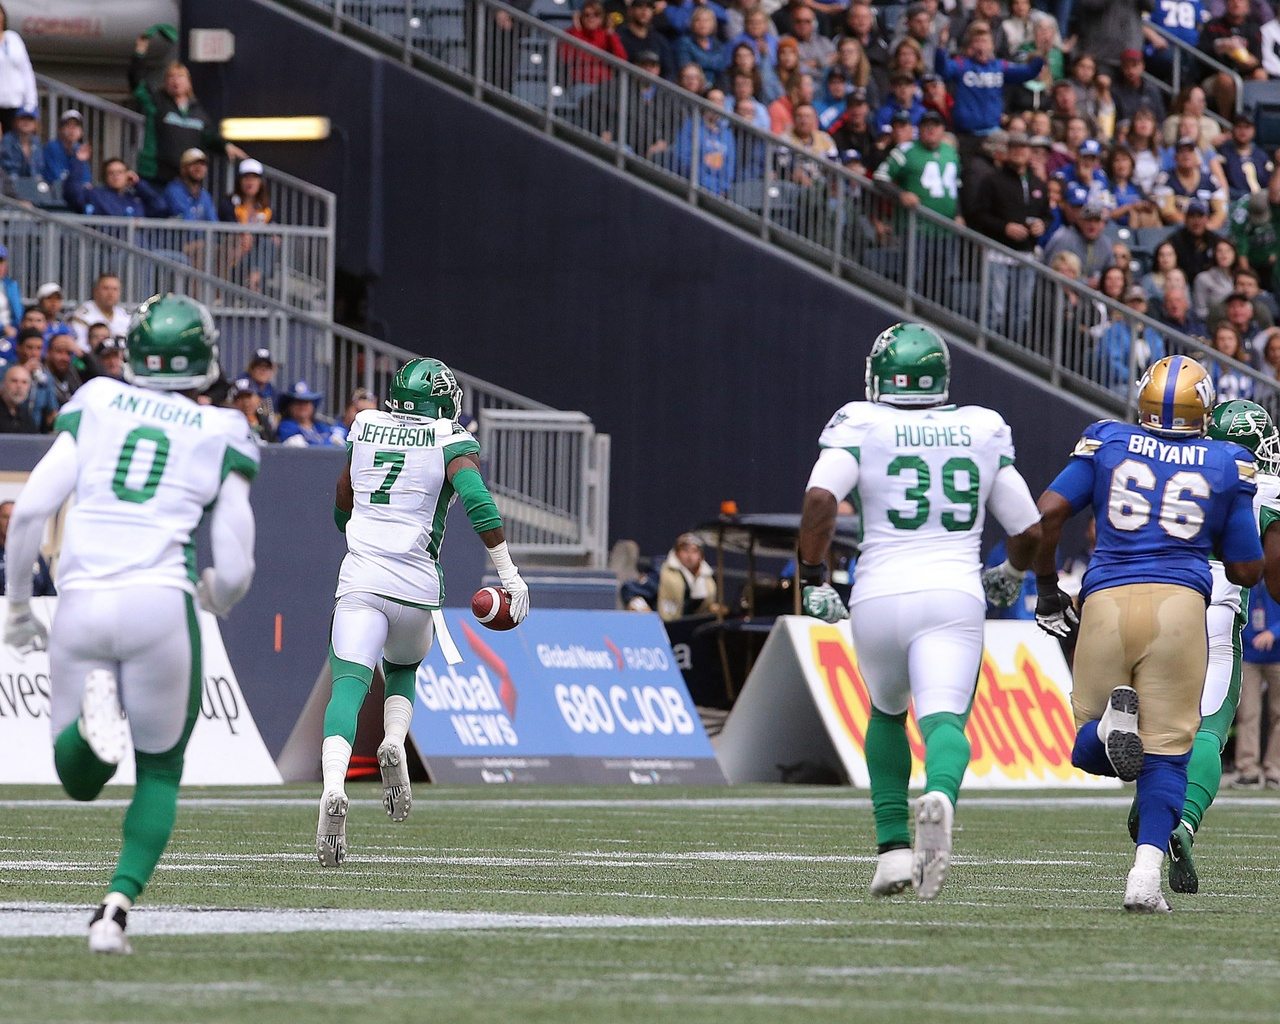 Riders Return To Practice, Still Talking About Willie